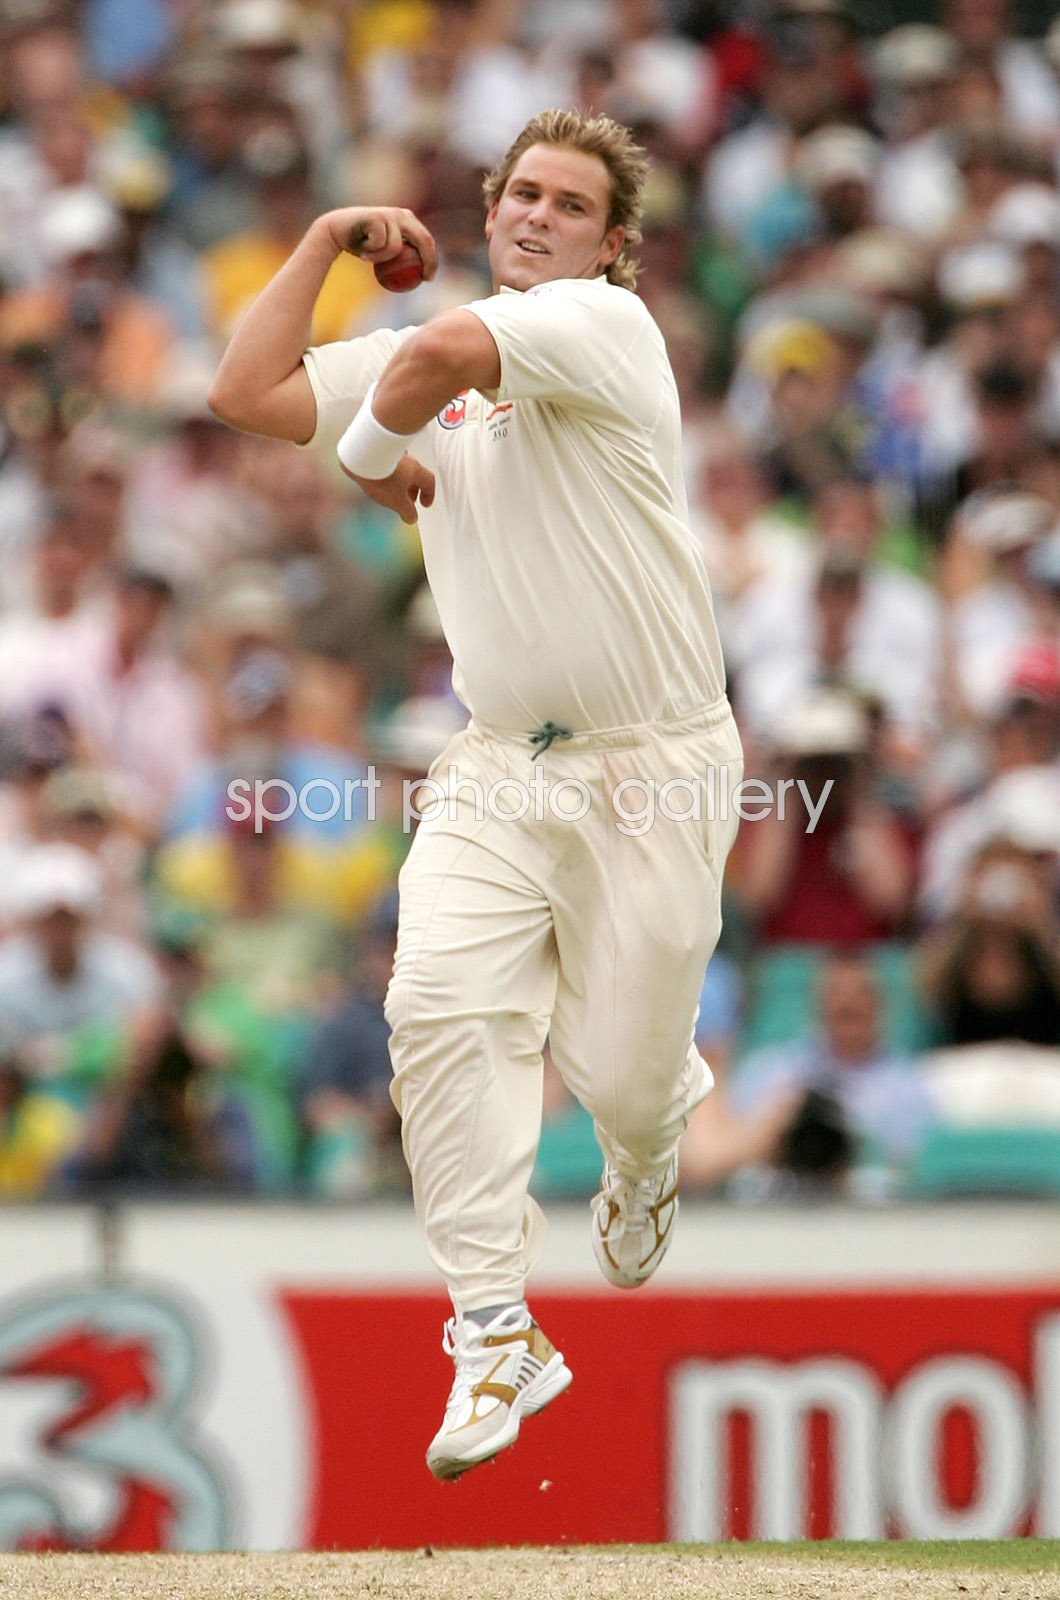 Shane Warne Australia Leg Spinner 5th Ashes Test Sydney 2007